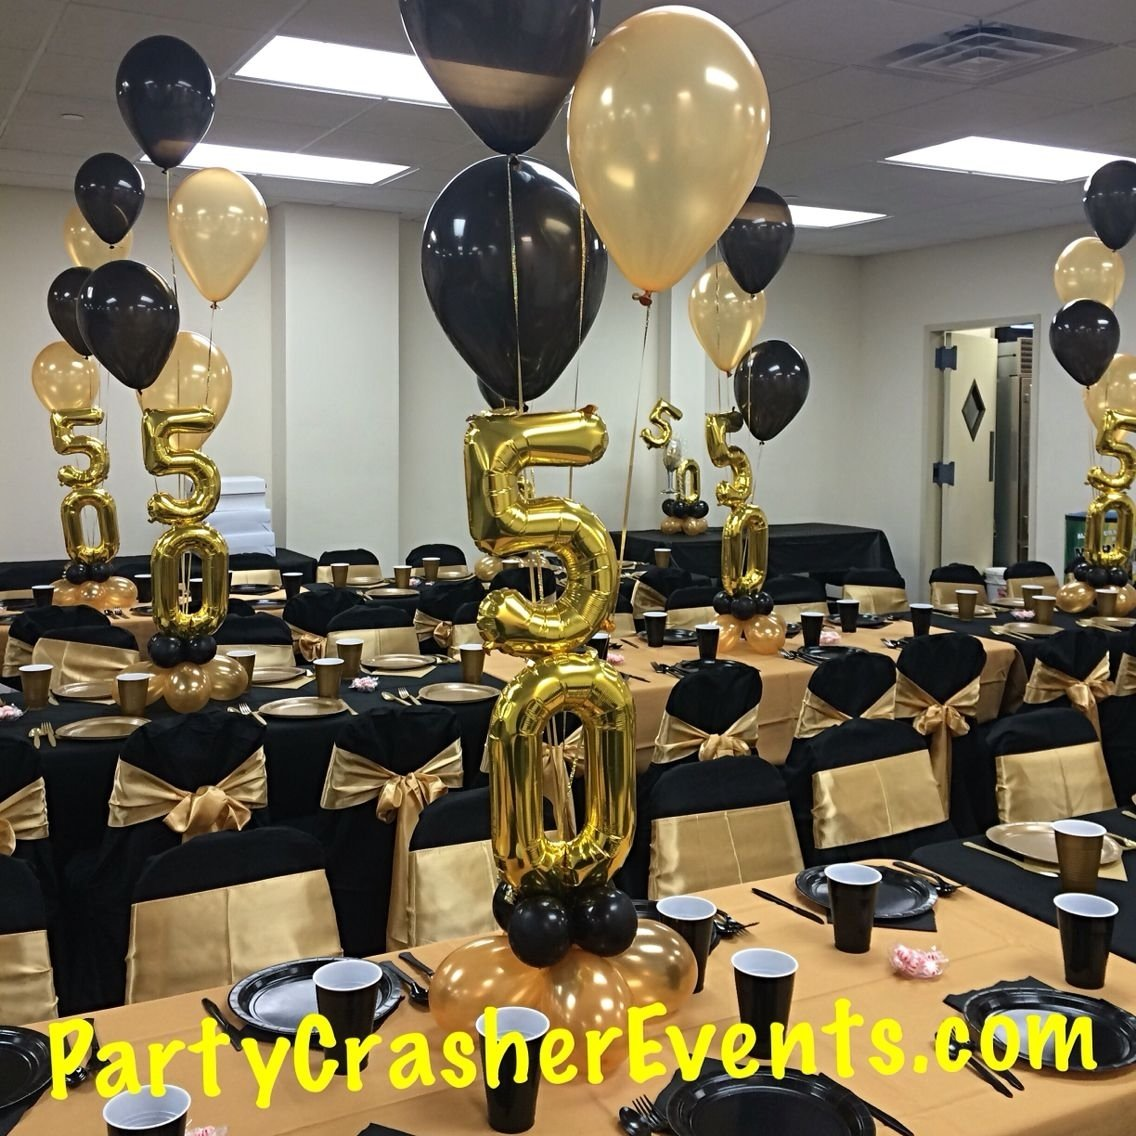 10 Attractive 50Th Birthday Party Ideas For Mom pindj peter on 30 year old birthday party ideas themes 2020